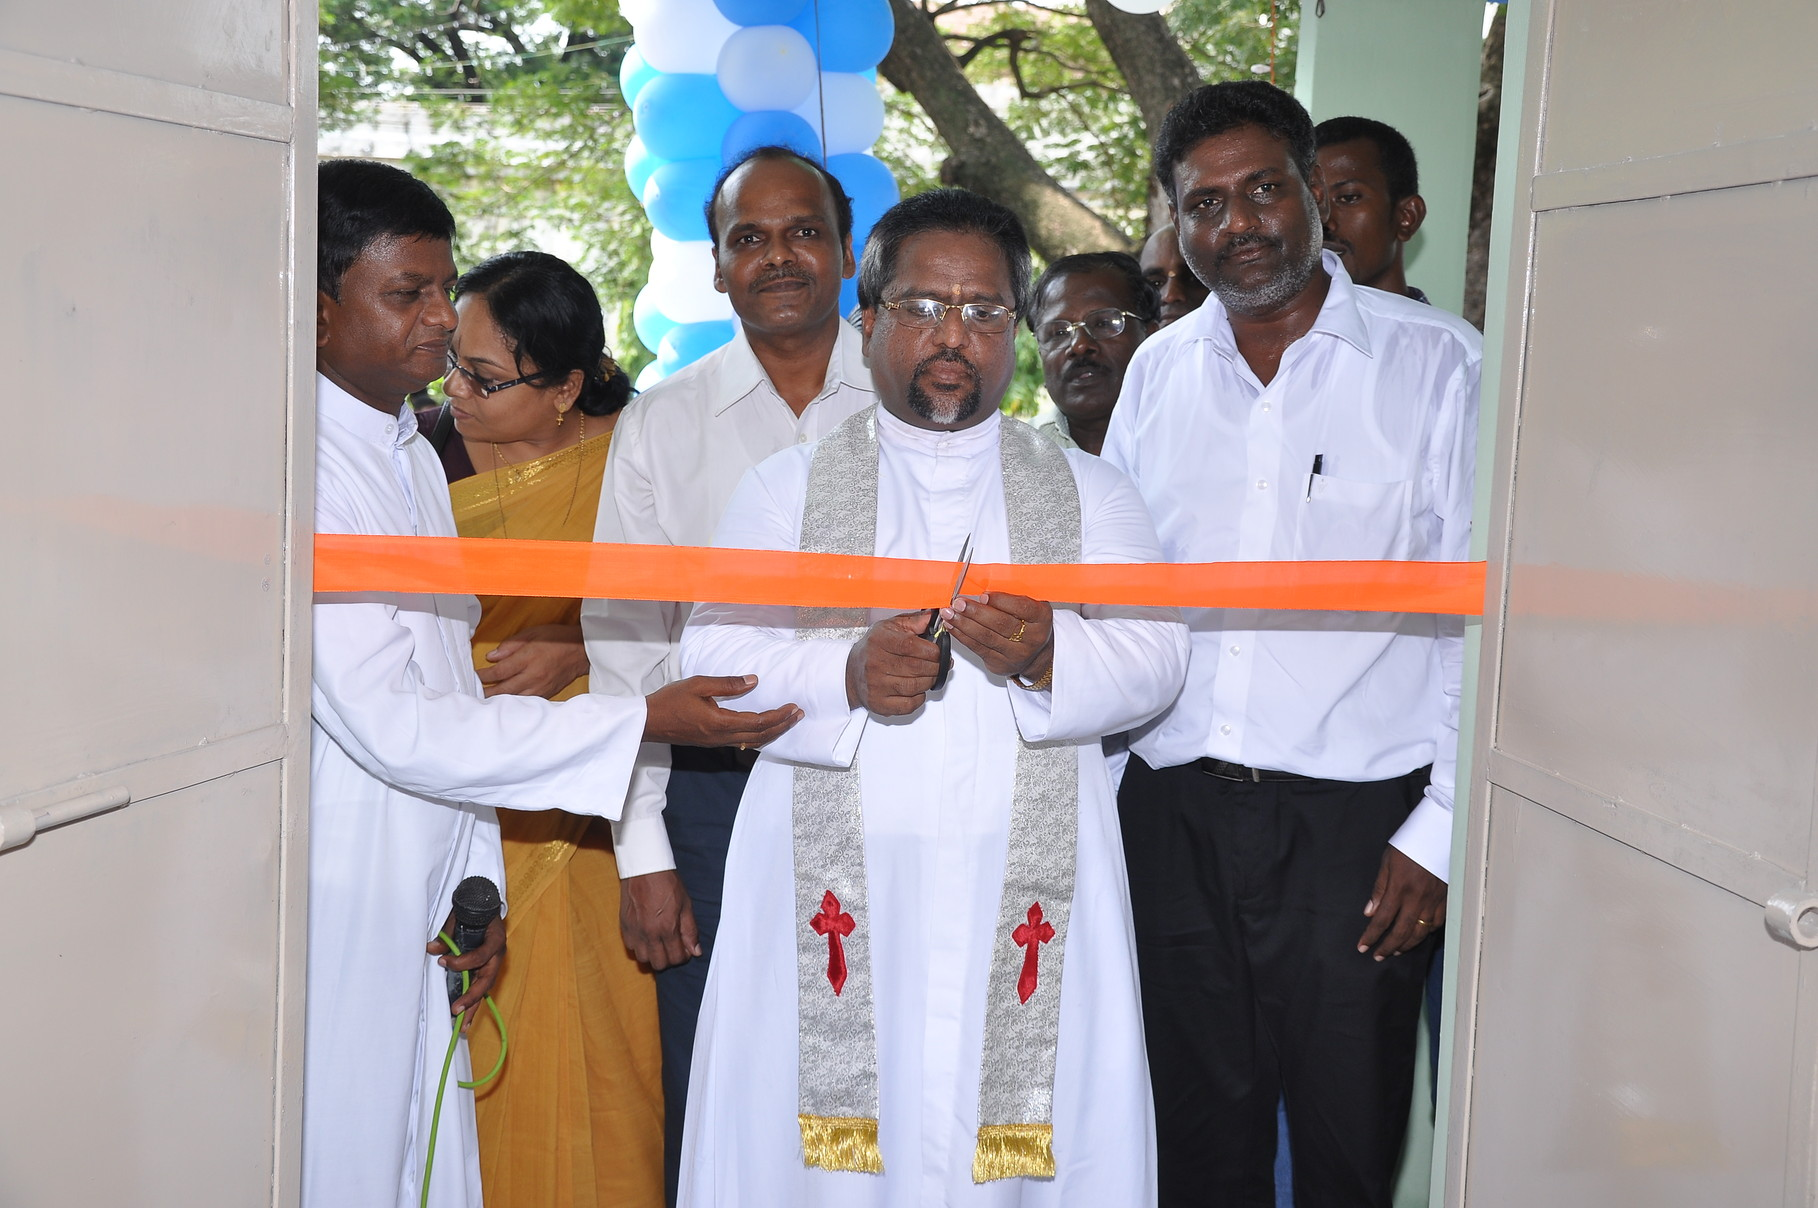 Rev. Fr. Dr. I. John Robert, from V.G. Vellore Diocese, cutting the ribbon to inaugurate the 1rst classroom